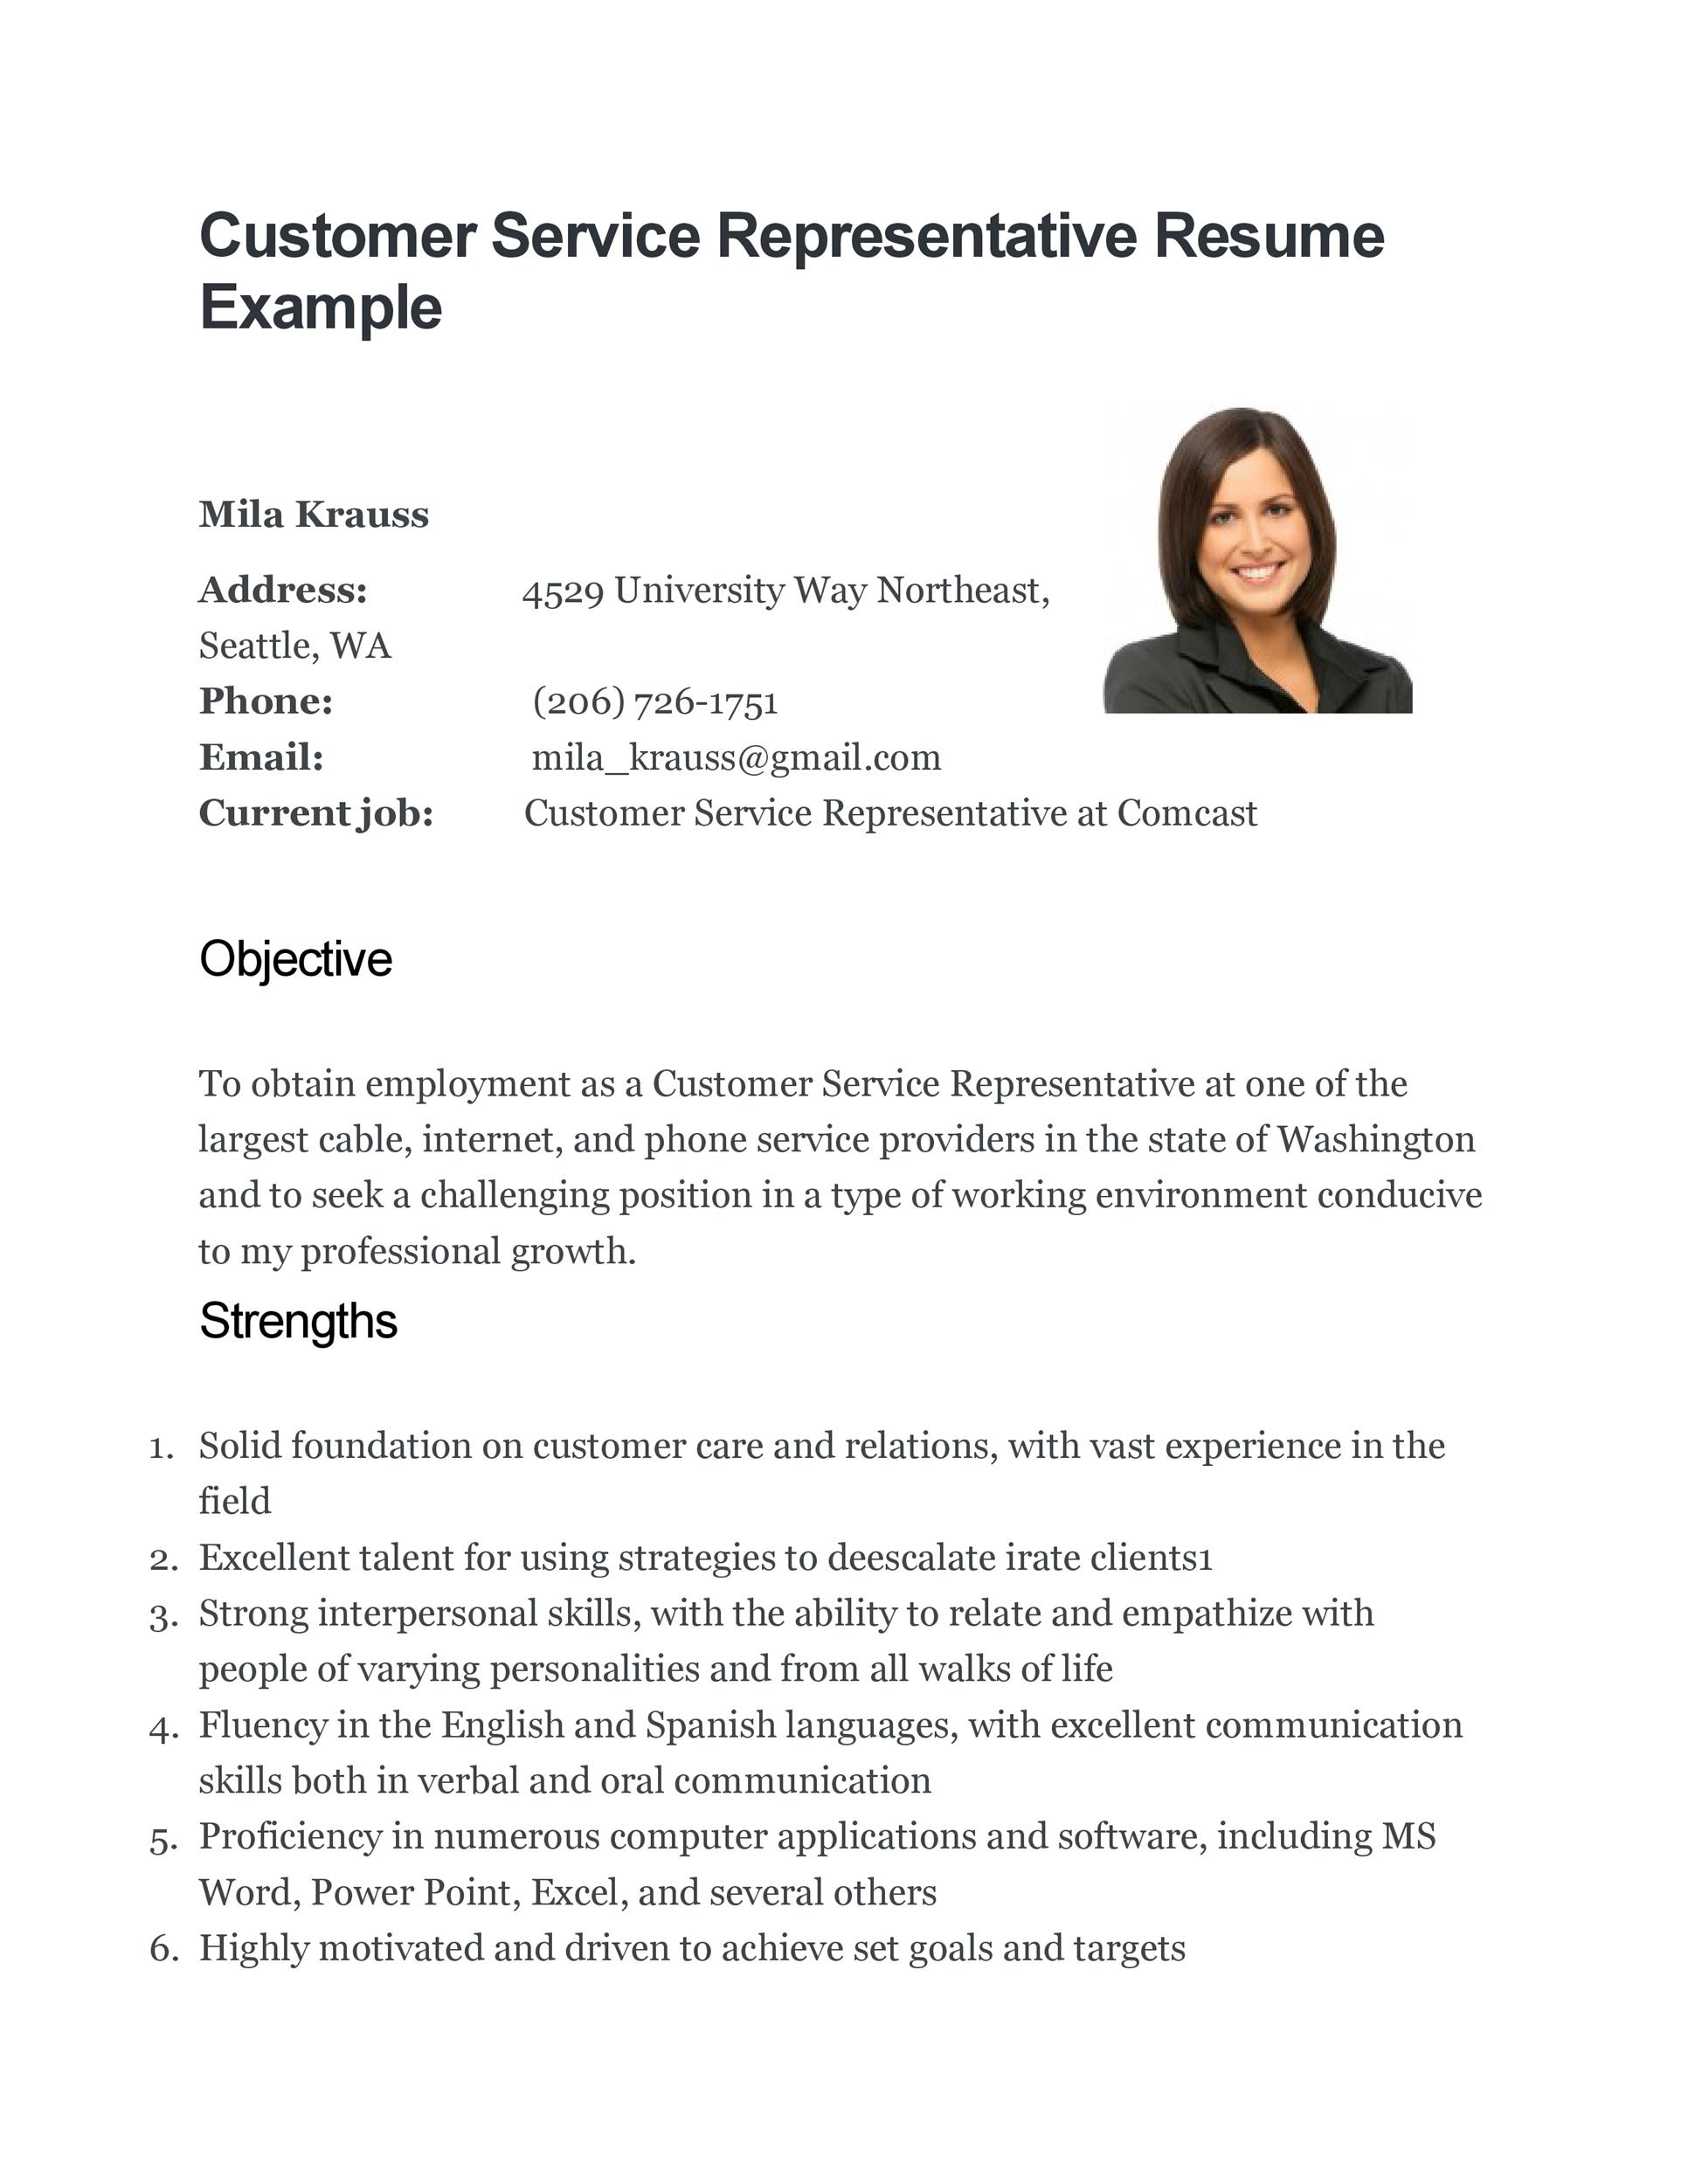 printable customer service resume template 16 - Sample Resume For Customer Service